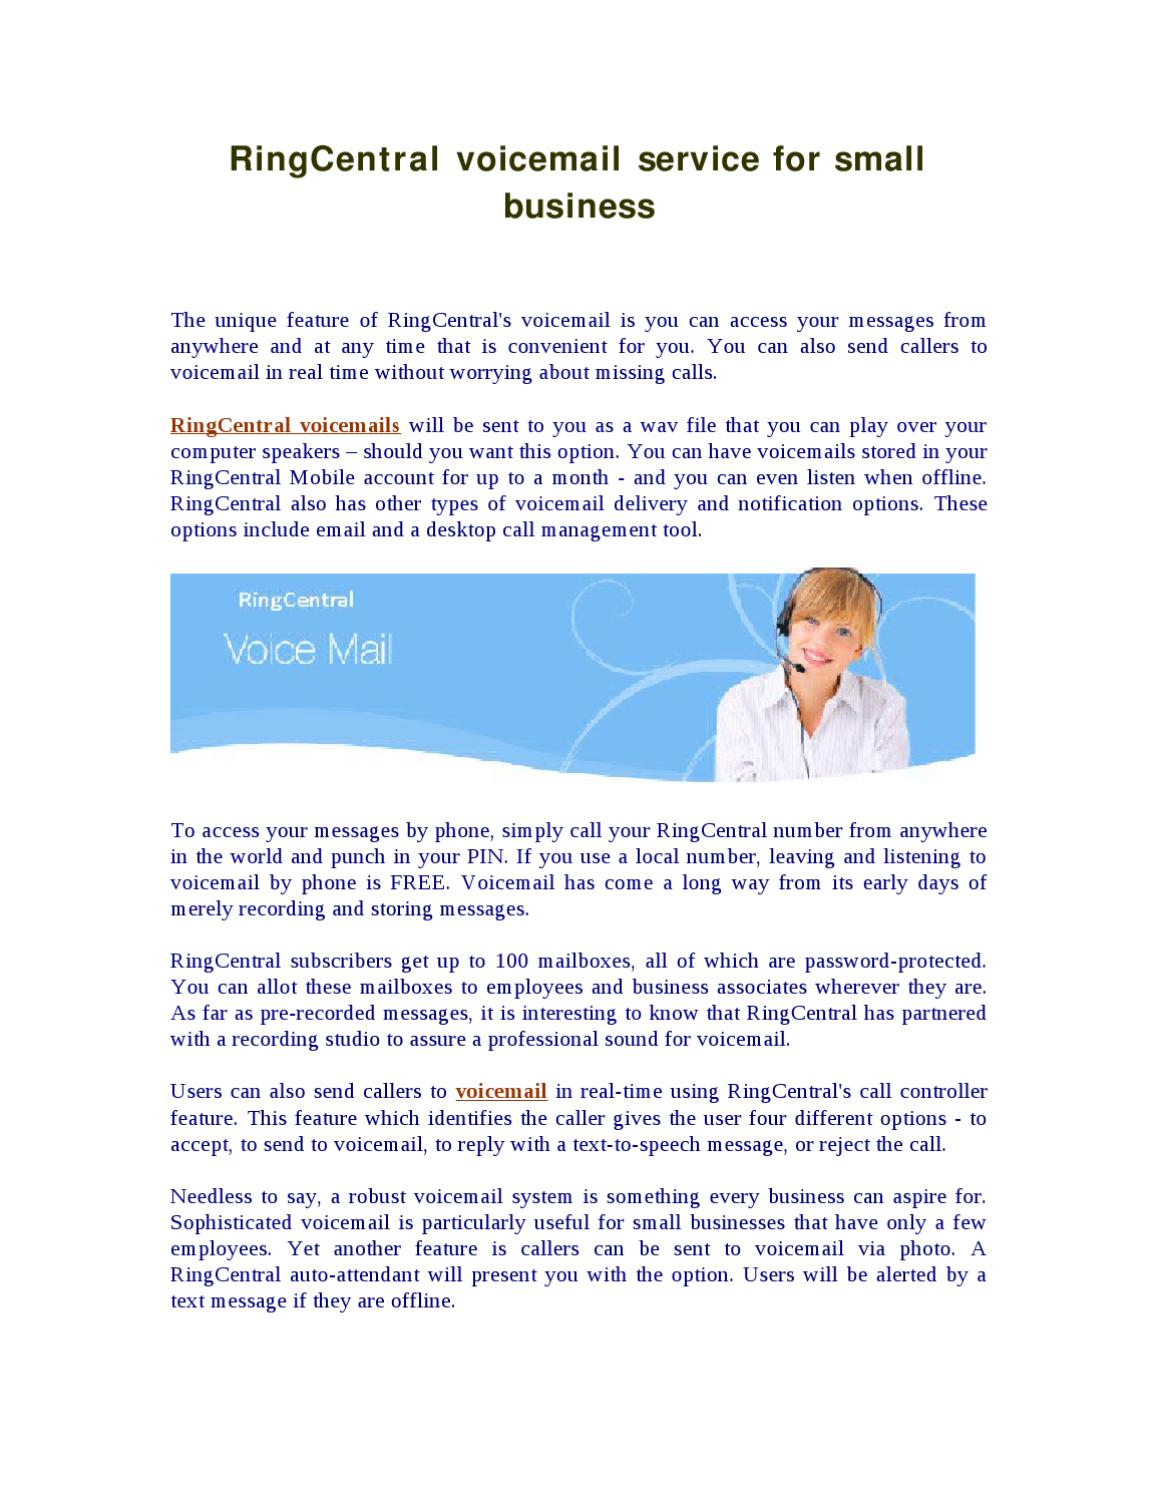 Ringcentral Voicemail Service For Small Business By James Allen Issuu